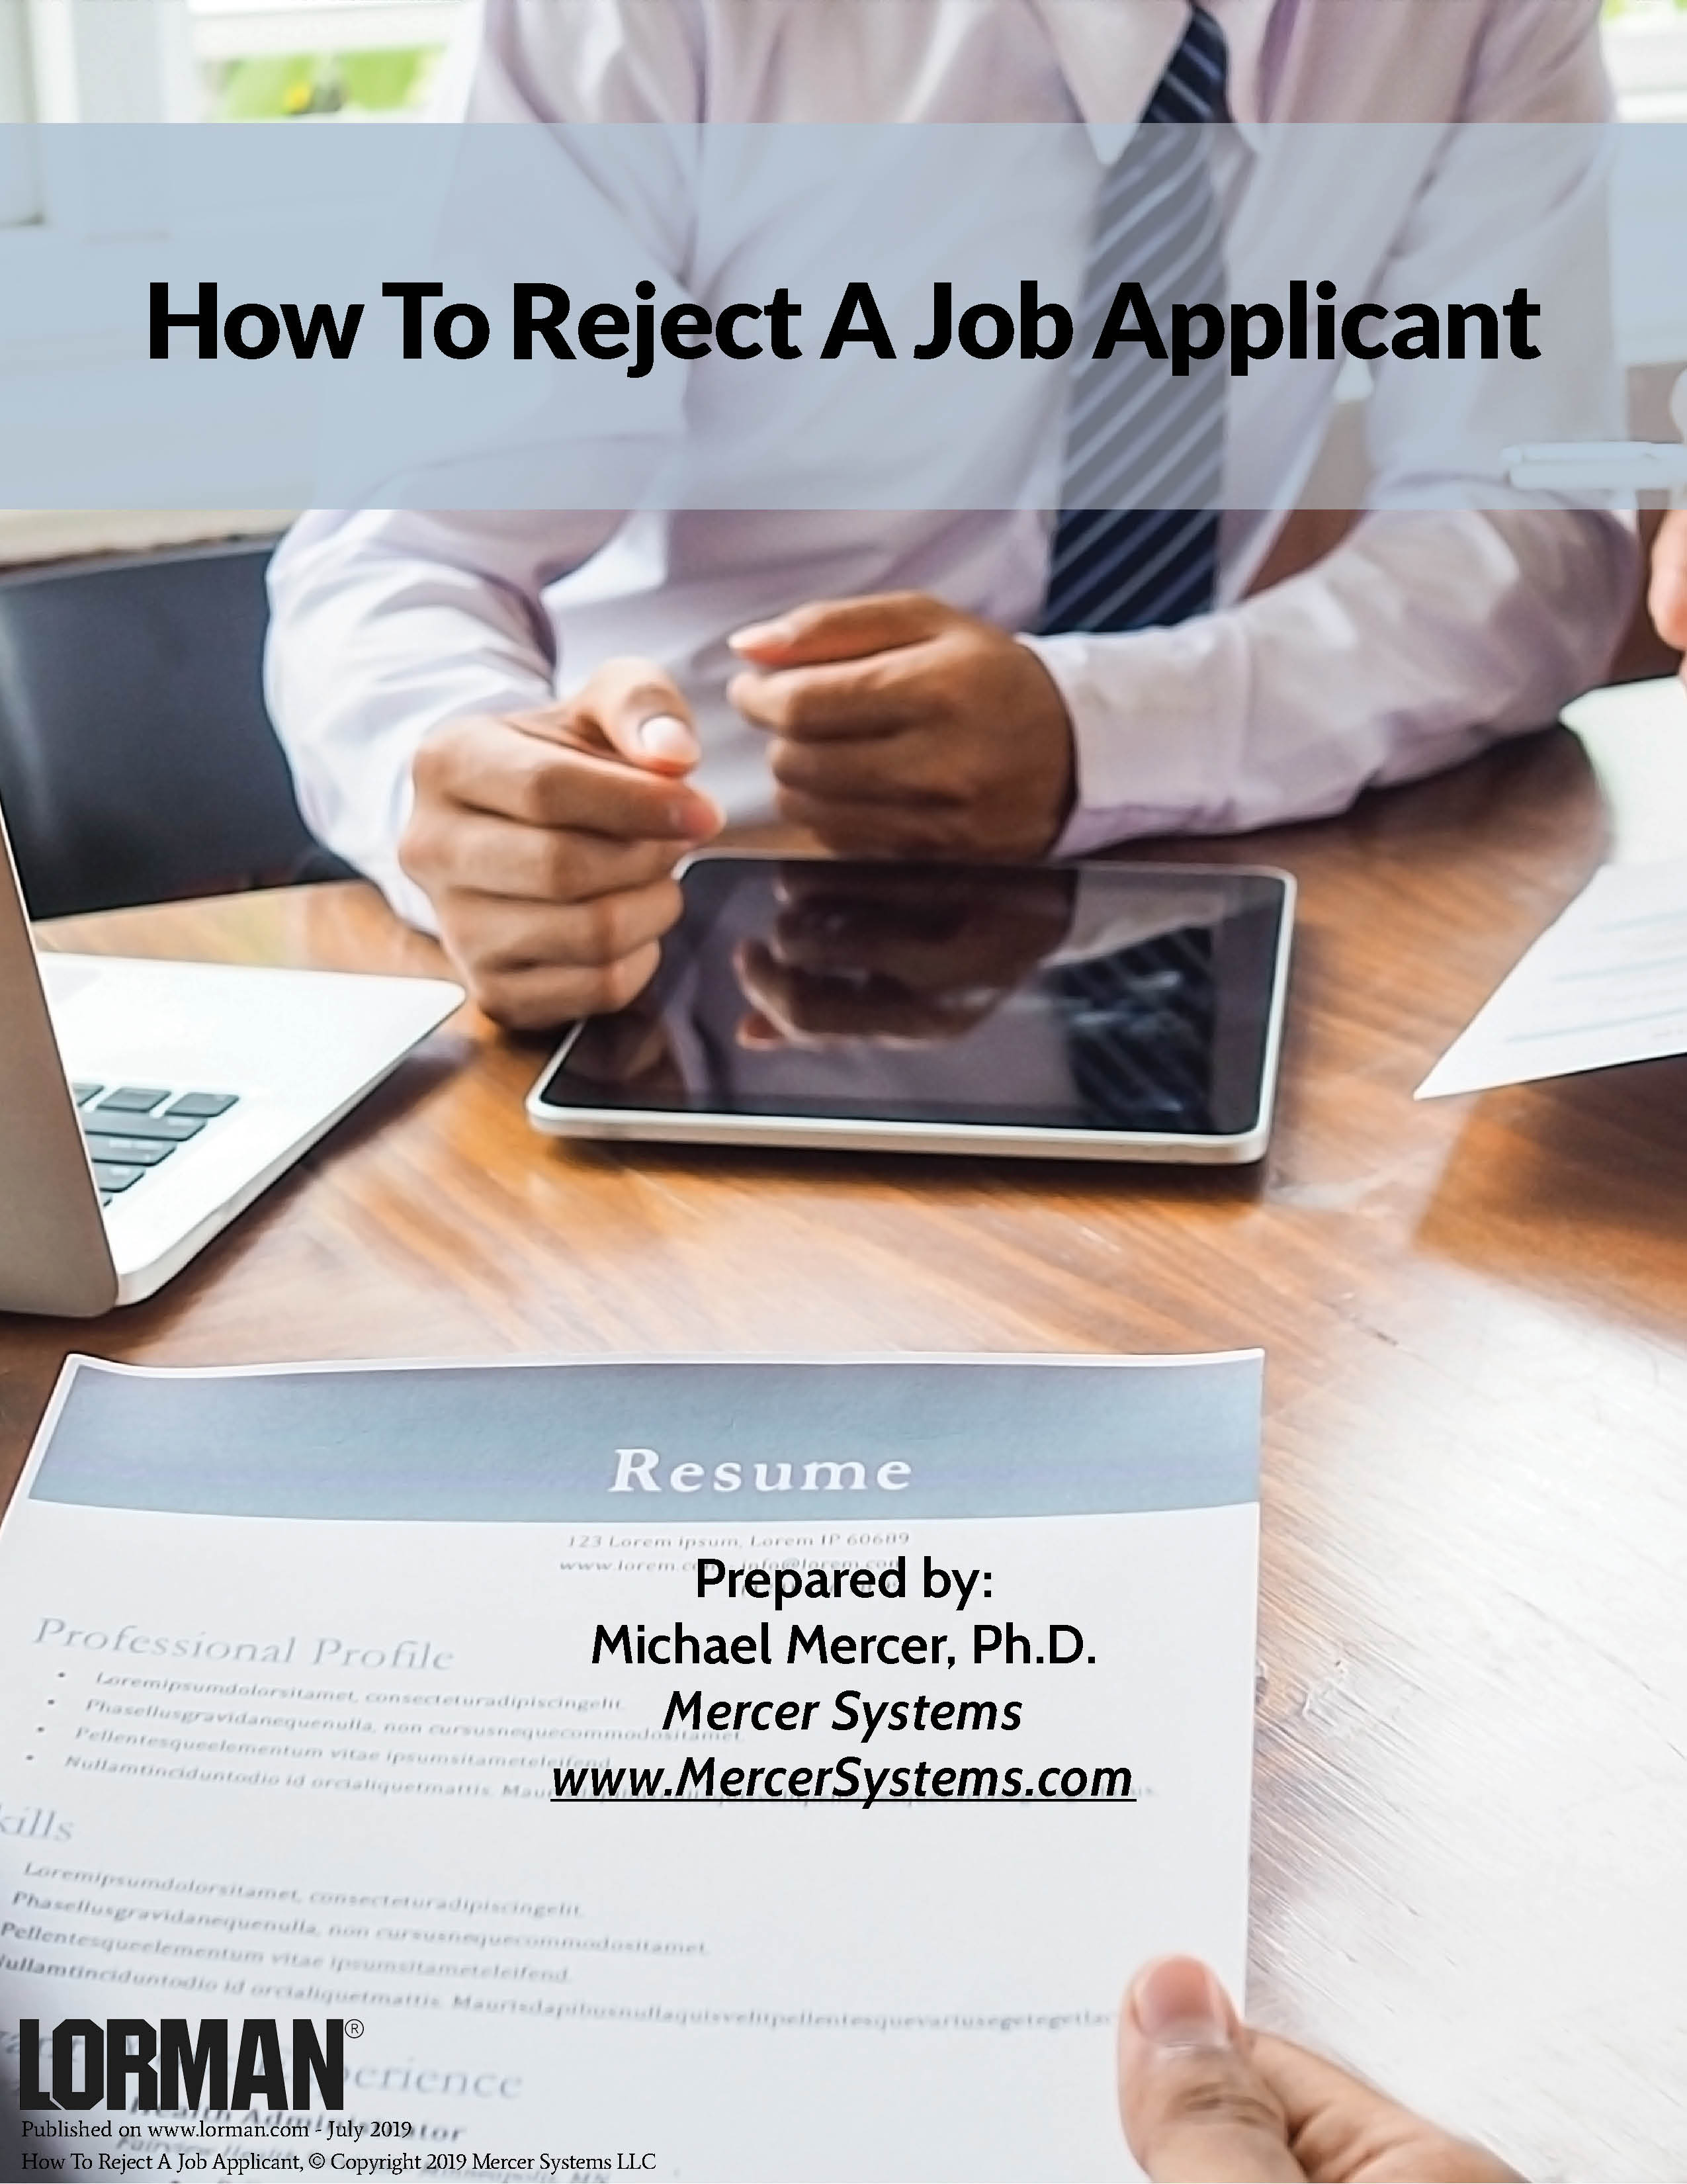 How to Reject a Job Applicant